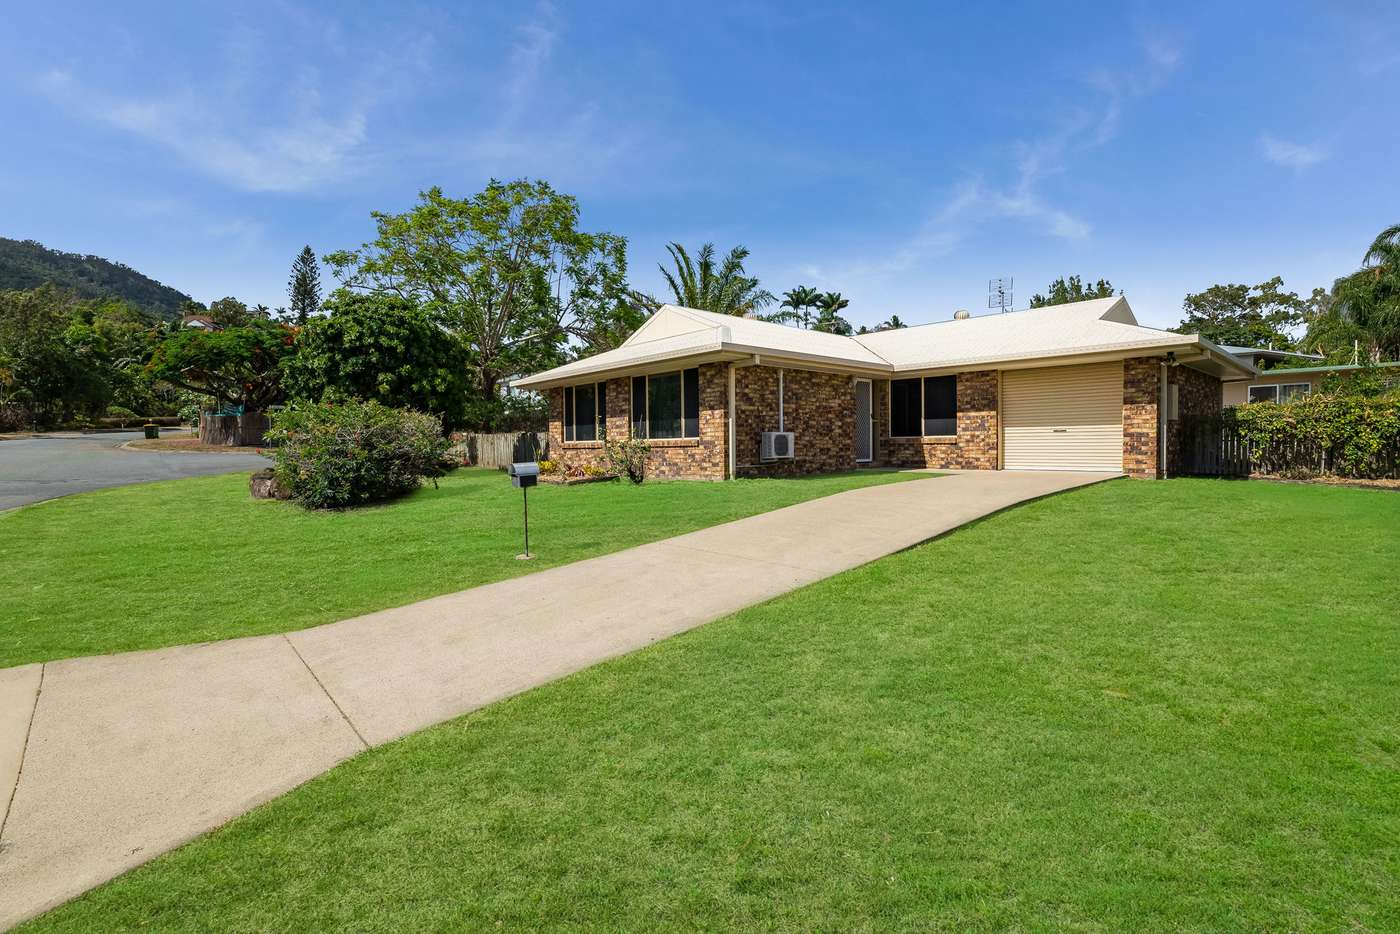 Main view of Homely house listing, 4 Manooka Drive, Cannonvale QLD 4802